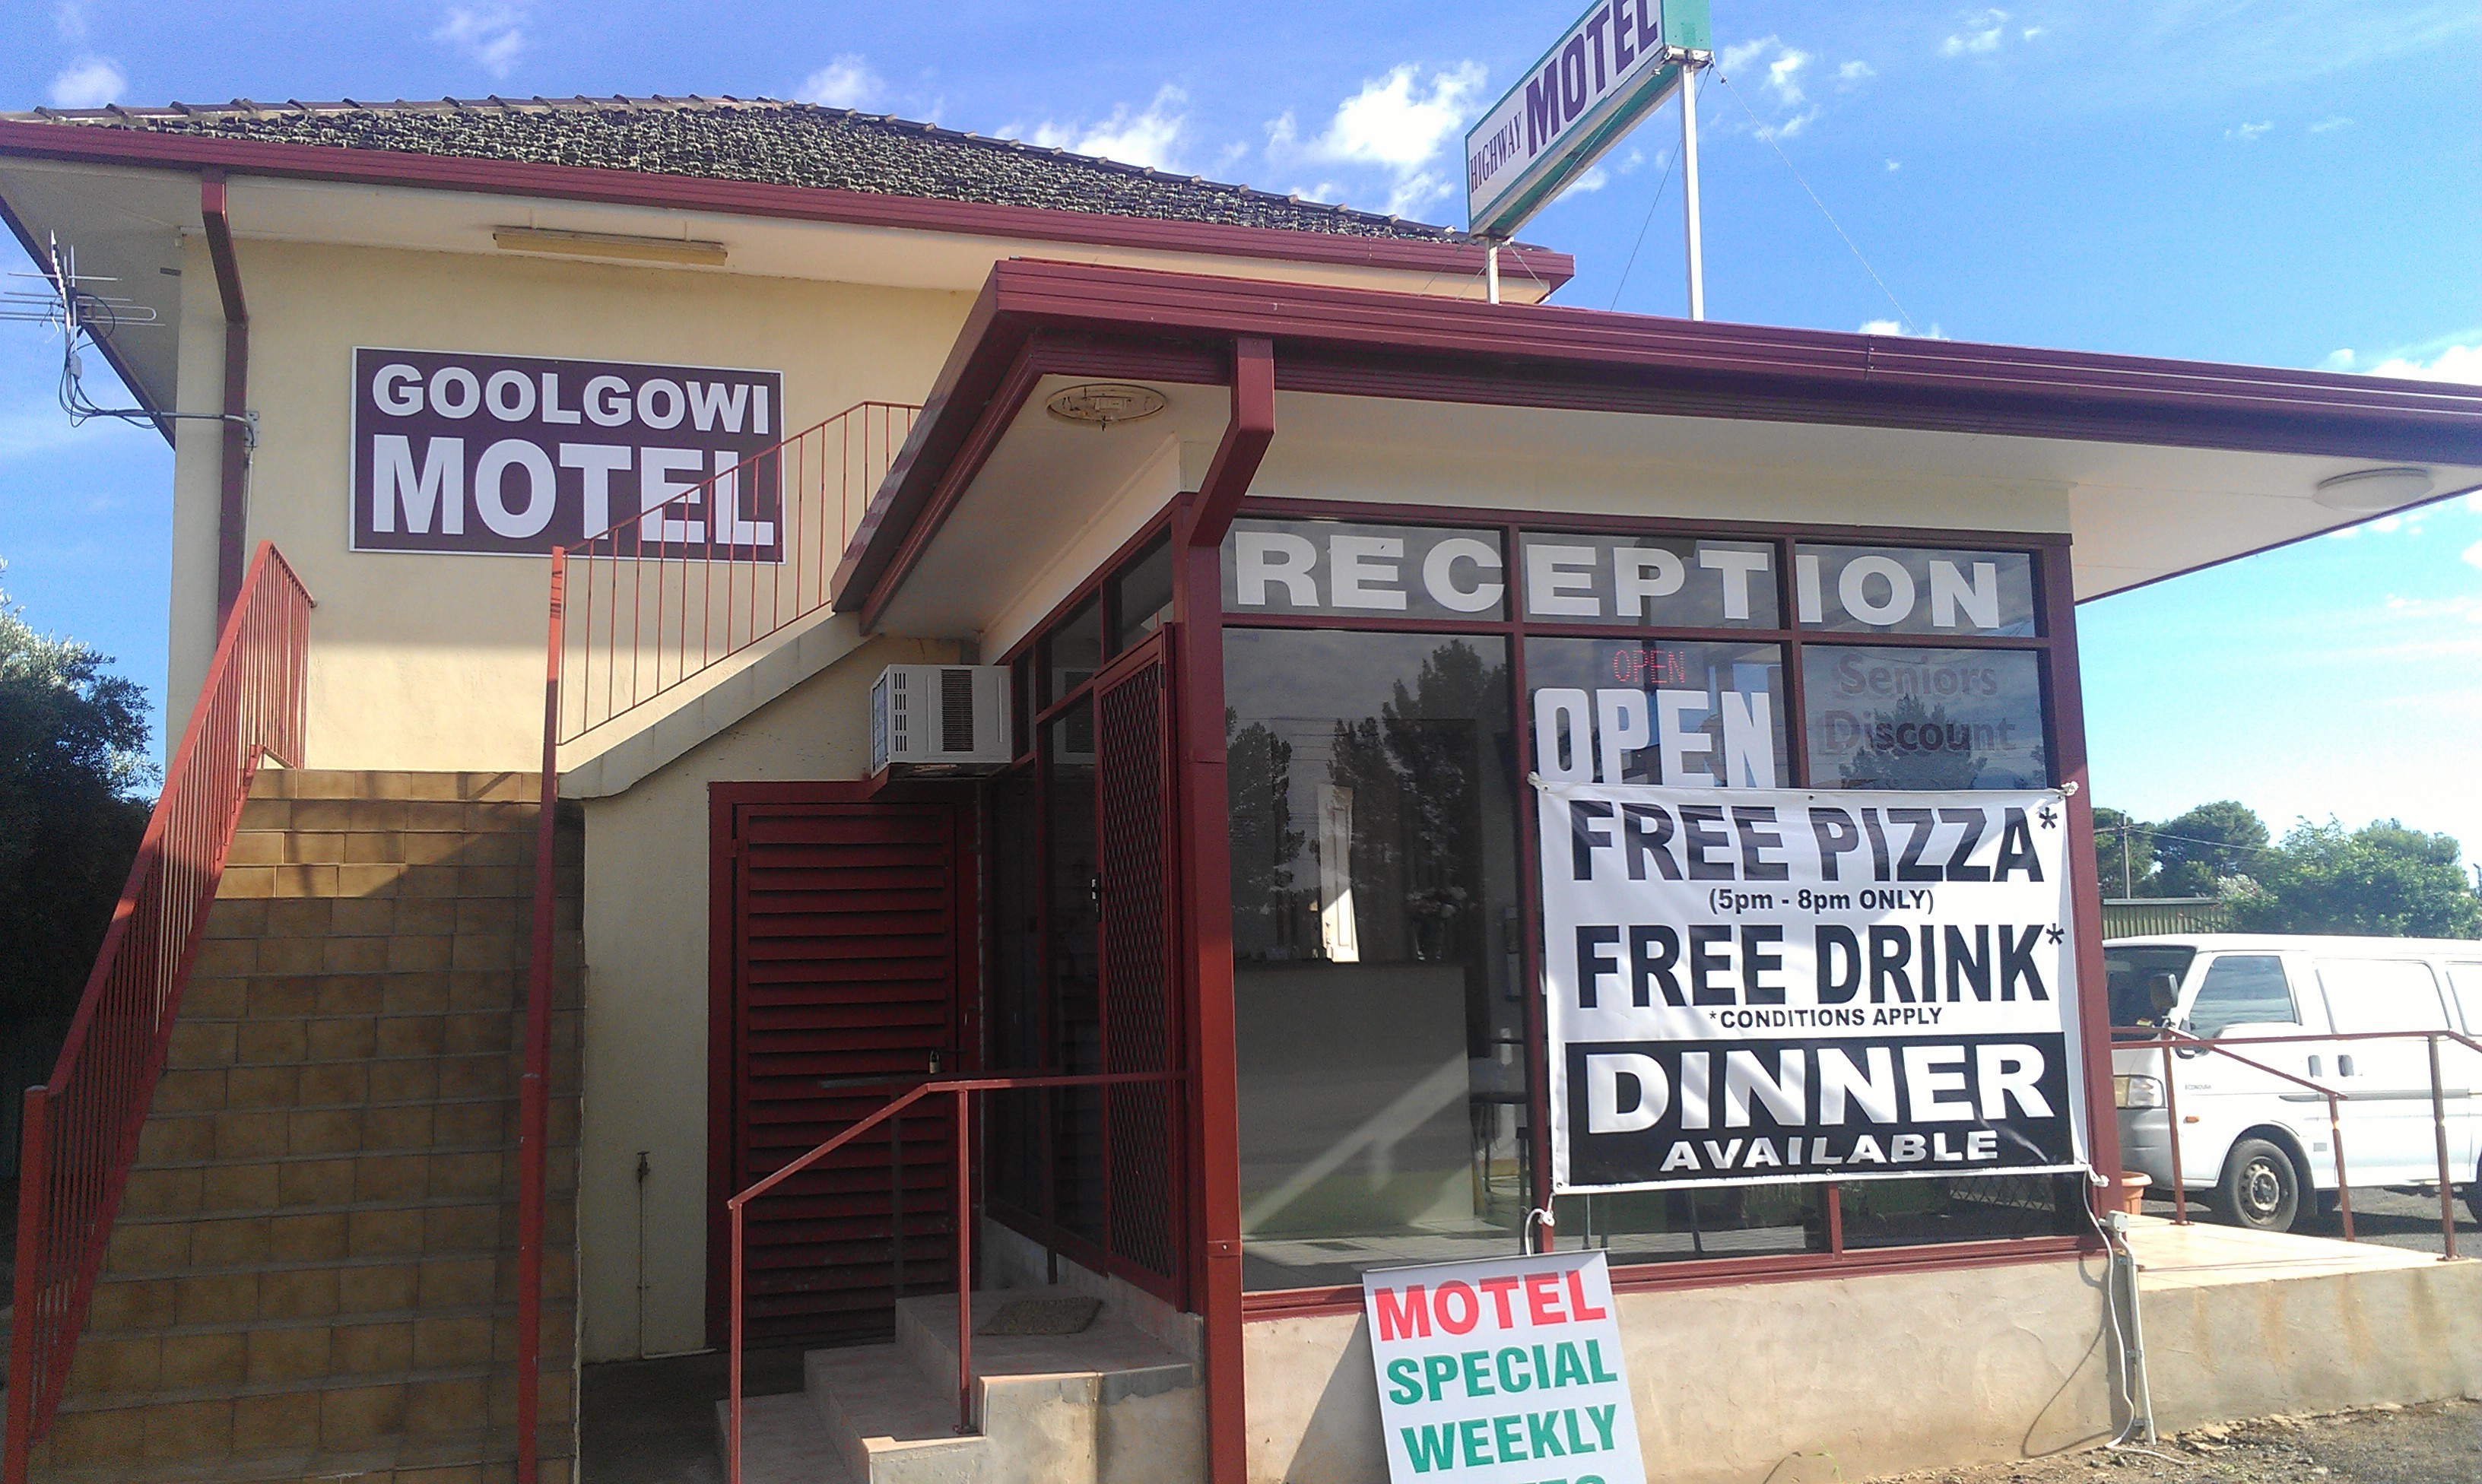 Royal Mail Hotel Goolgowi - Foster Accommodation